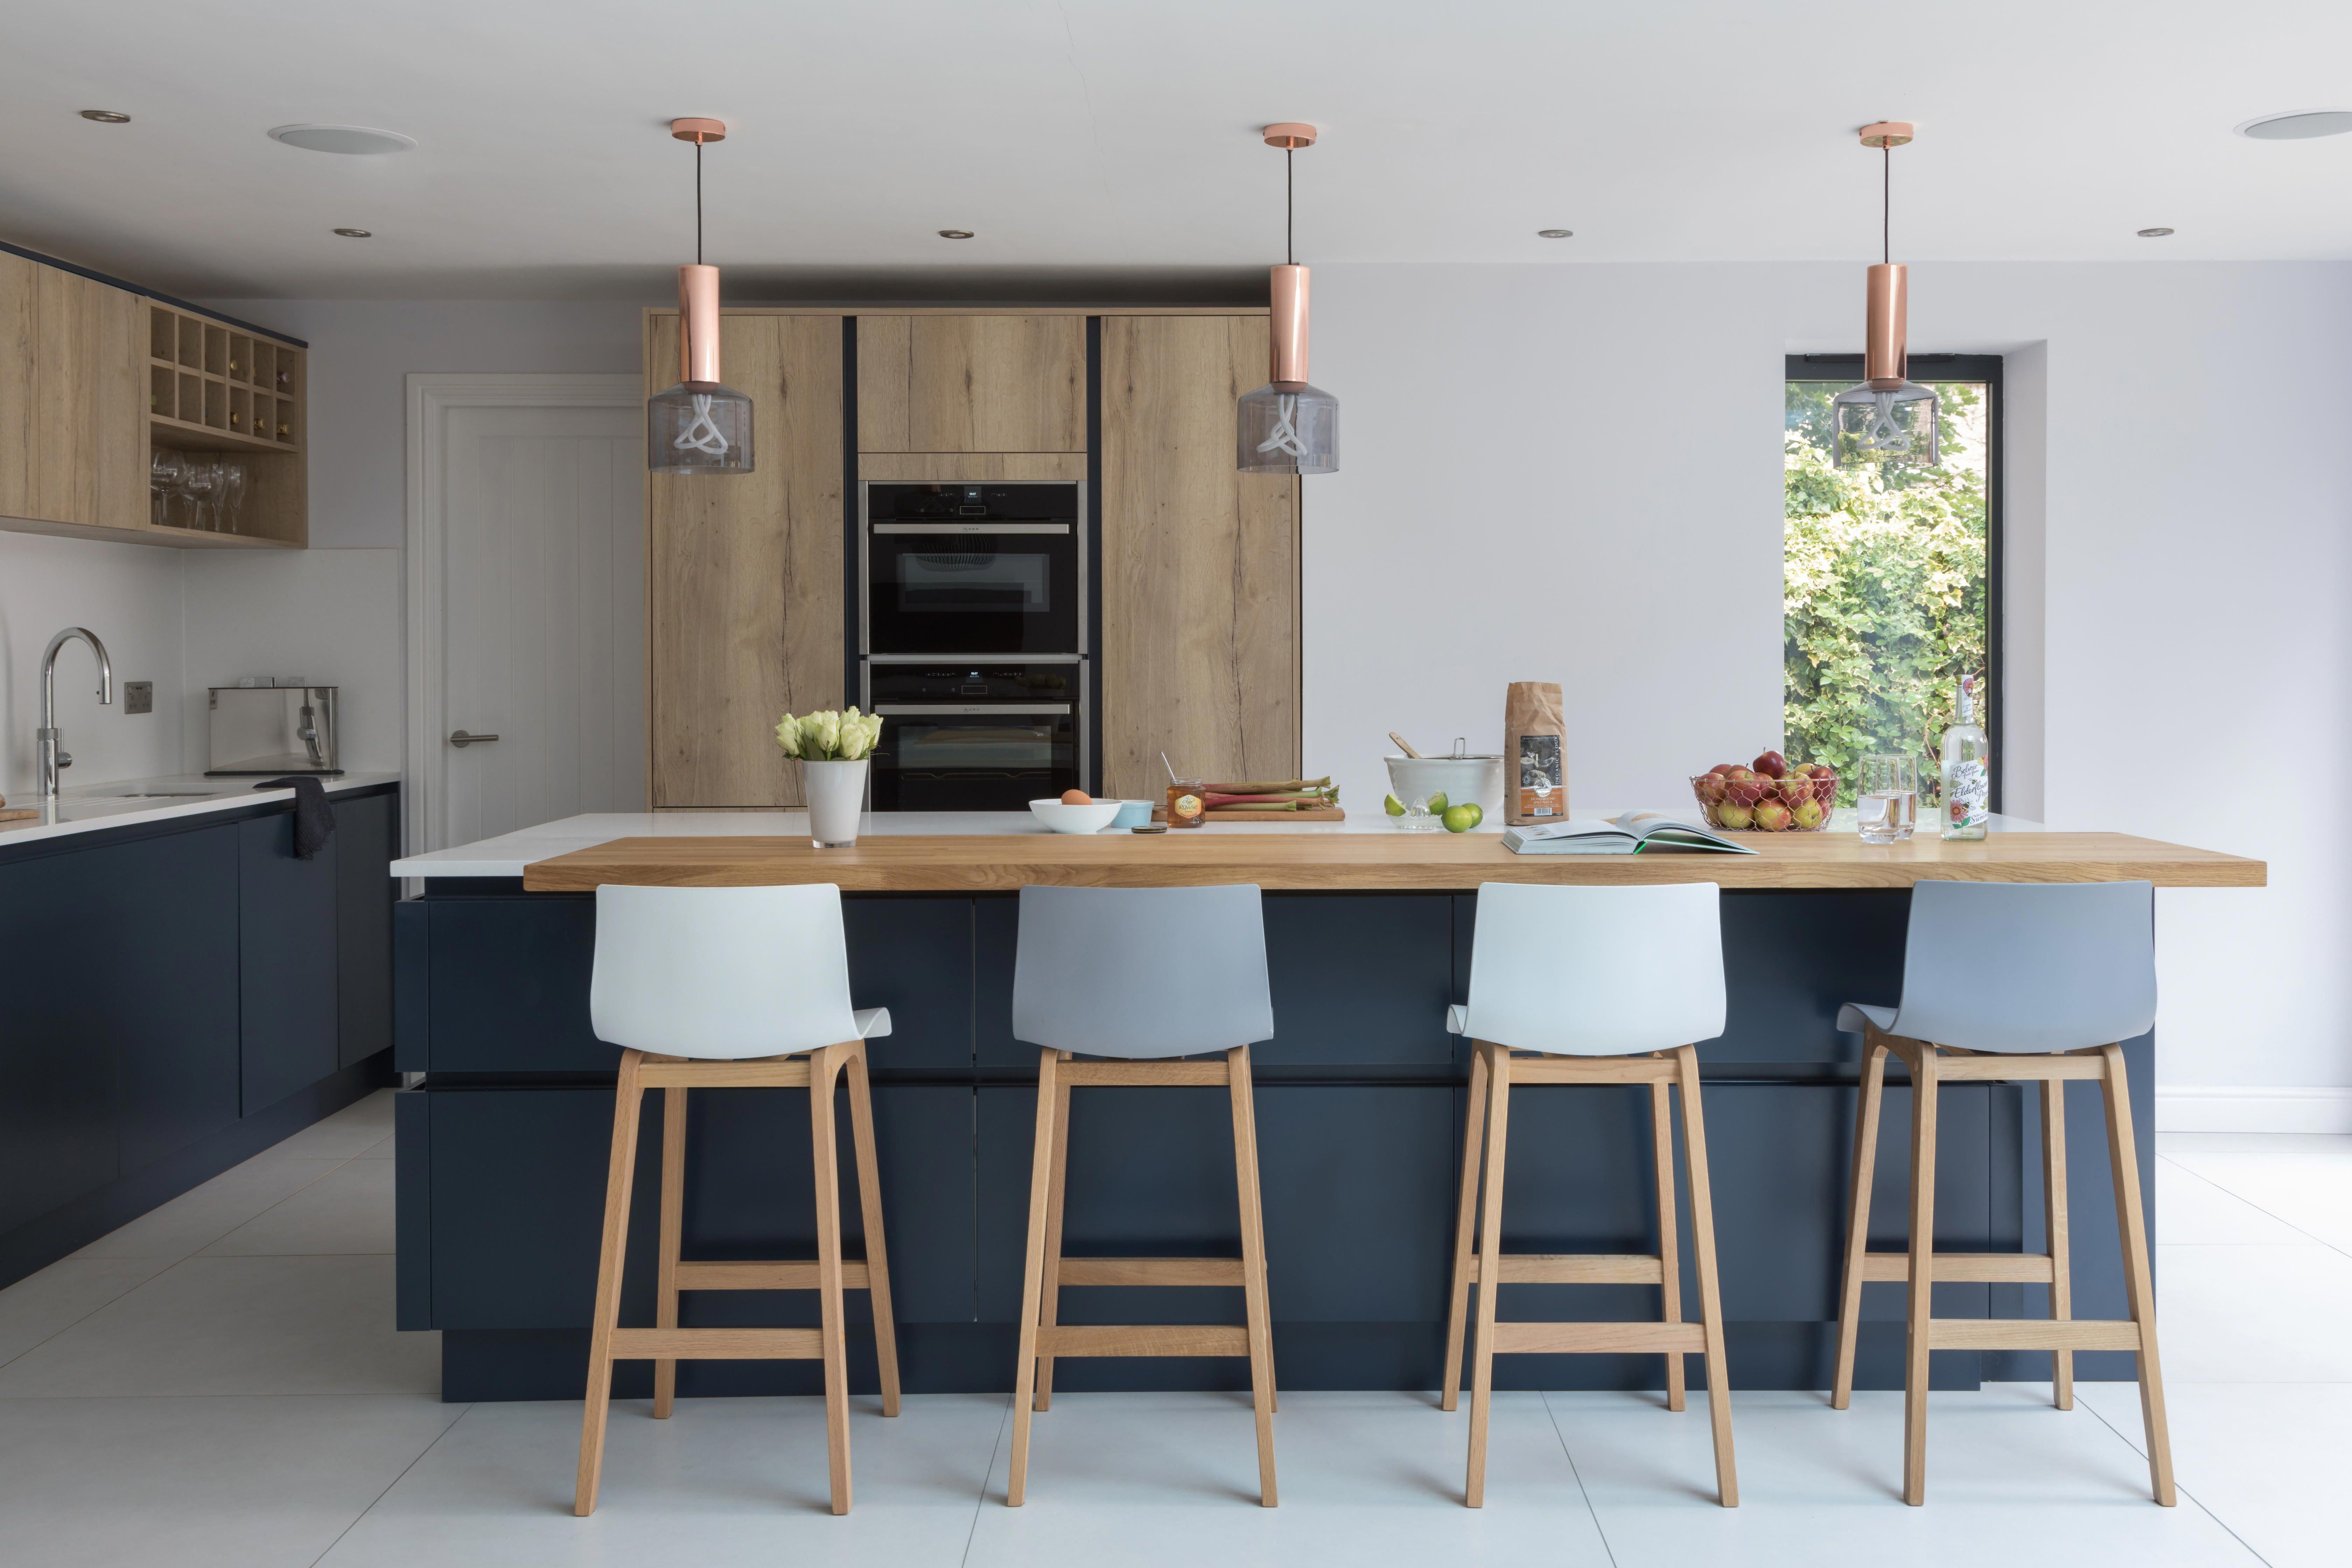 create the perfect modern scandi kitchen by mixing blue and textured wood finishes pictured on kitchen decor blue id=59666